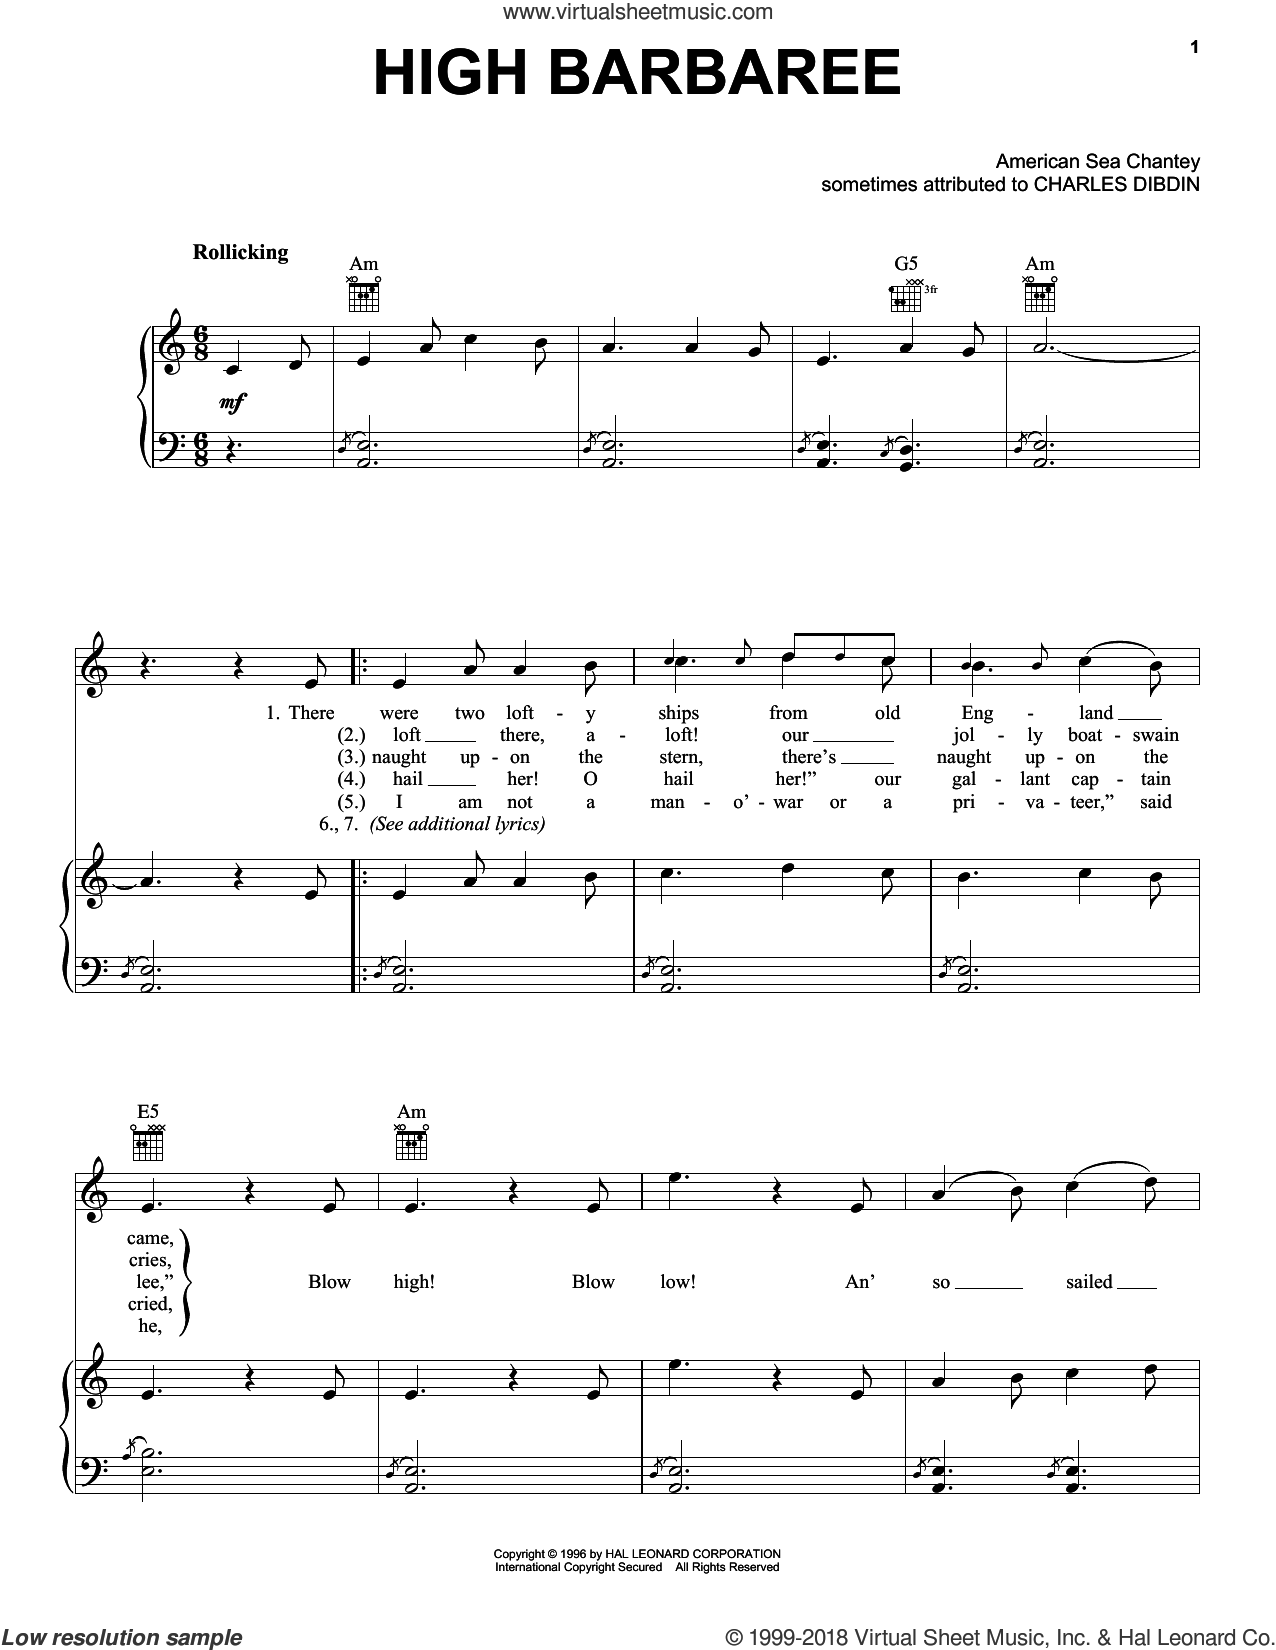 High Barbaree sheet music for voice, piano or guitar by Charles Dibdin, intermediate skill level